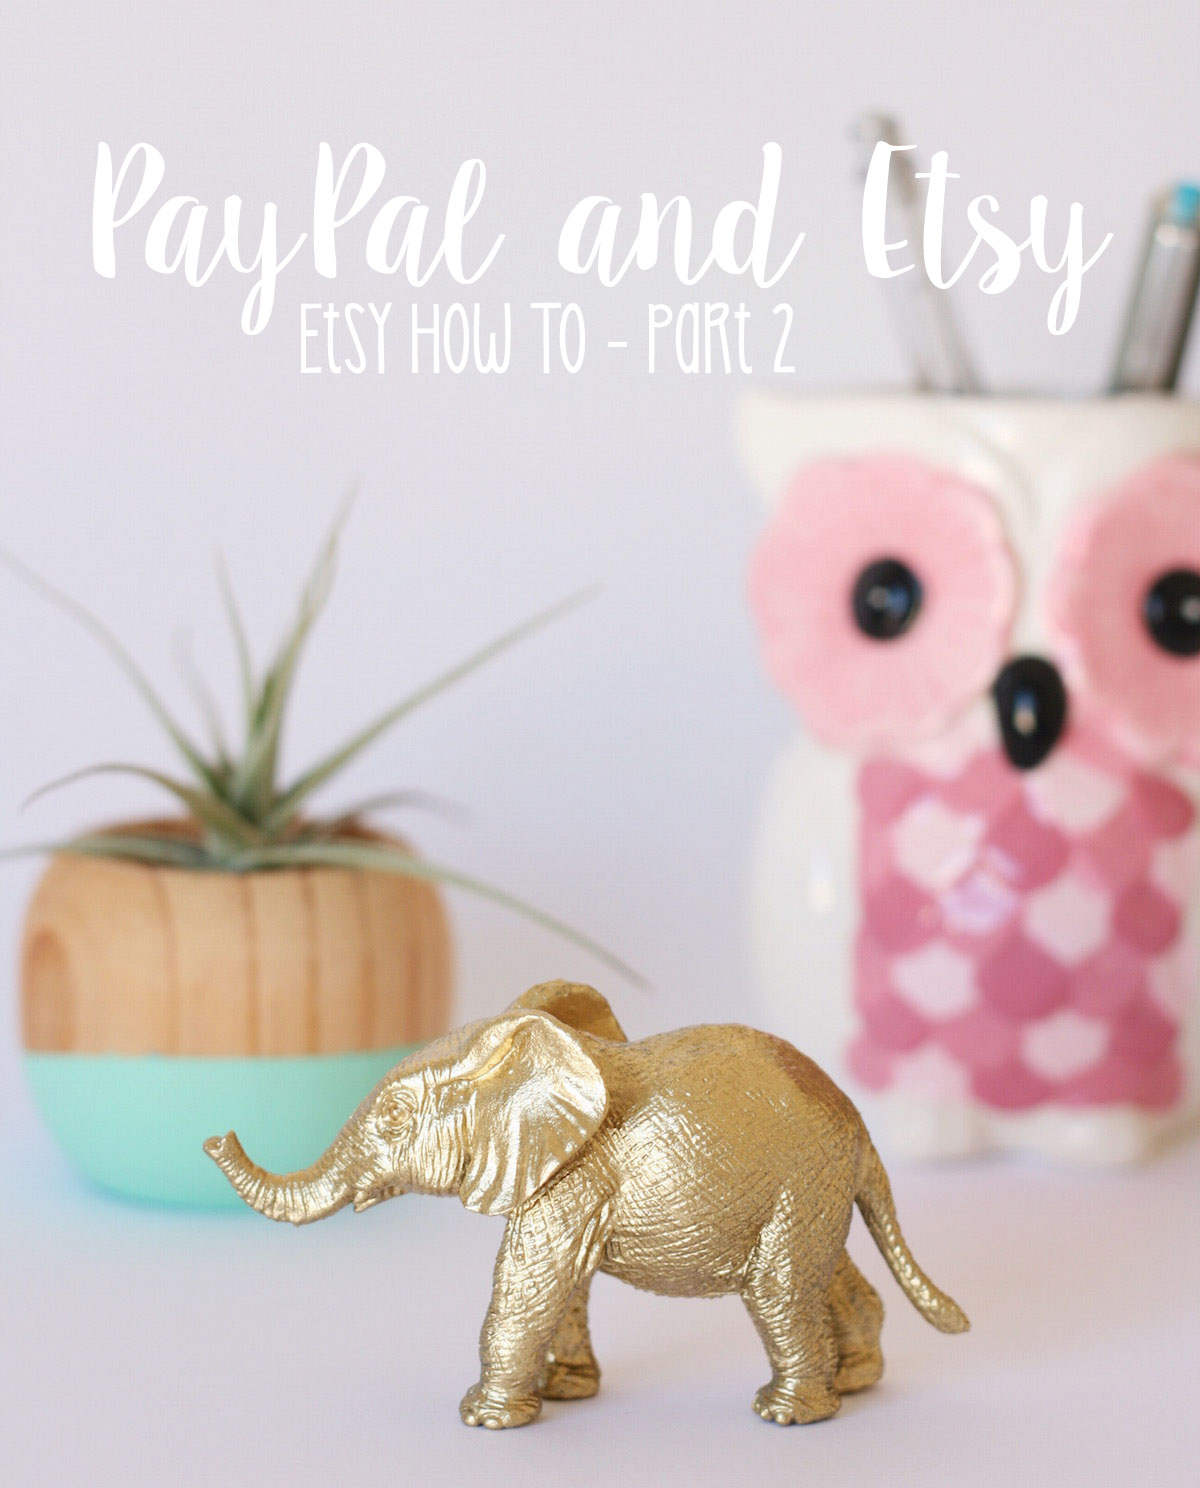 Set up PayPal for your Etsy Shop in South Africa // Etsy How To Part 2